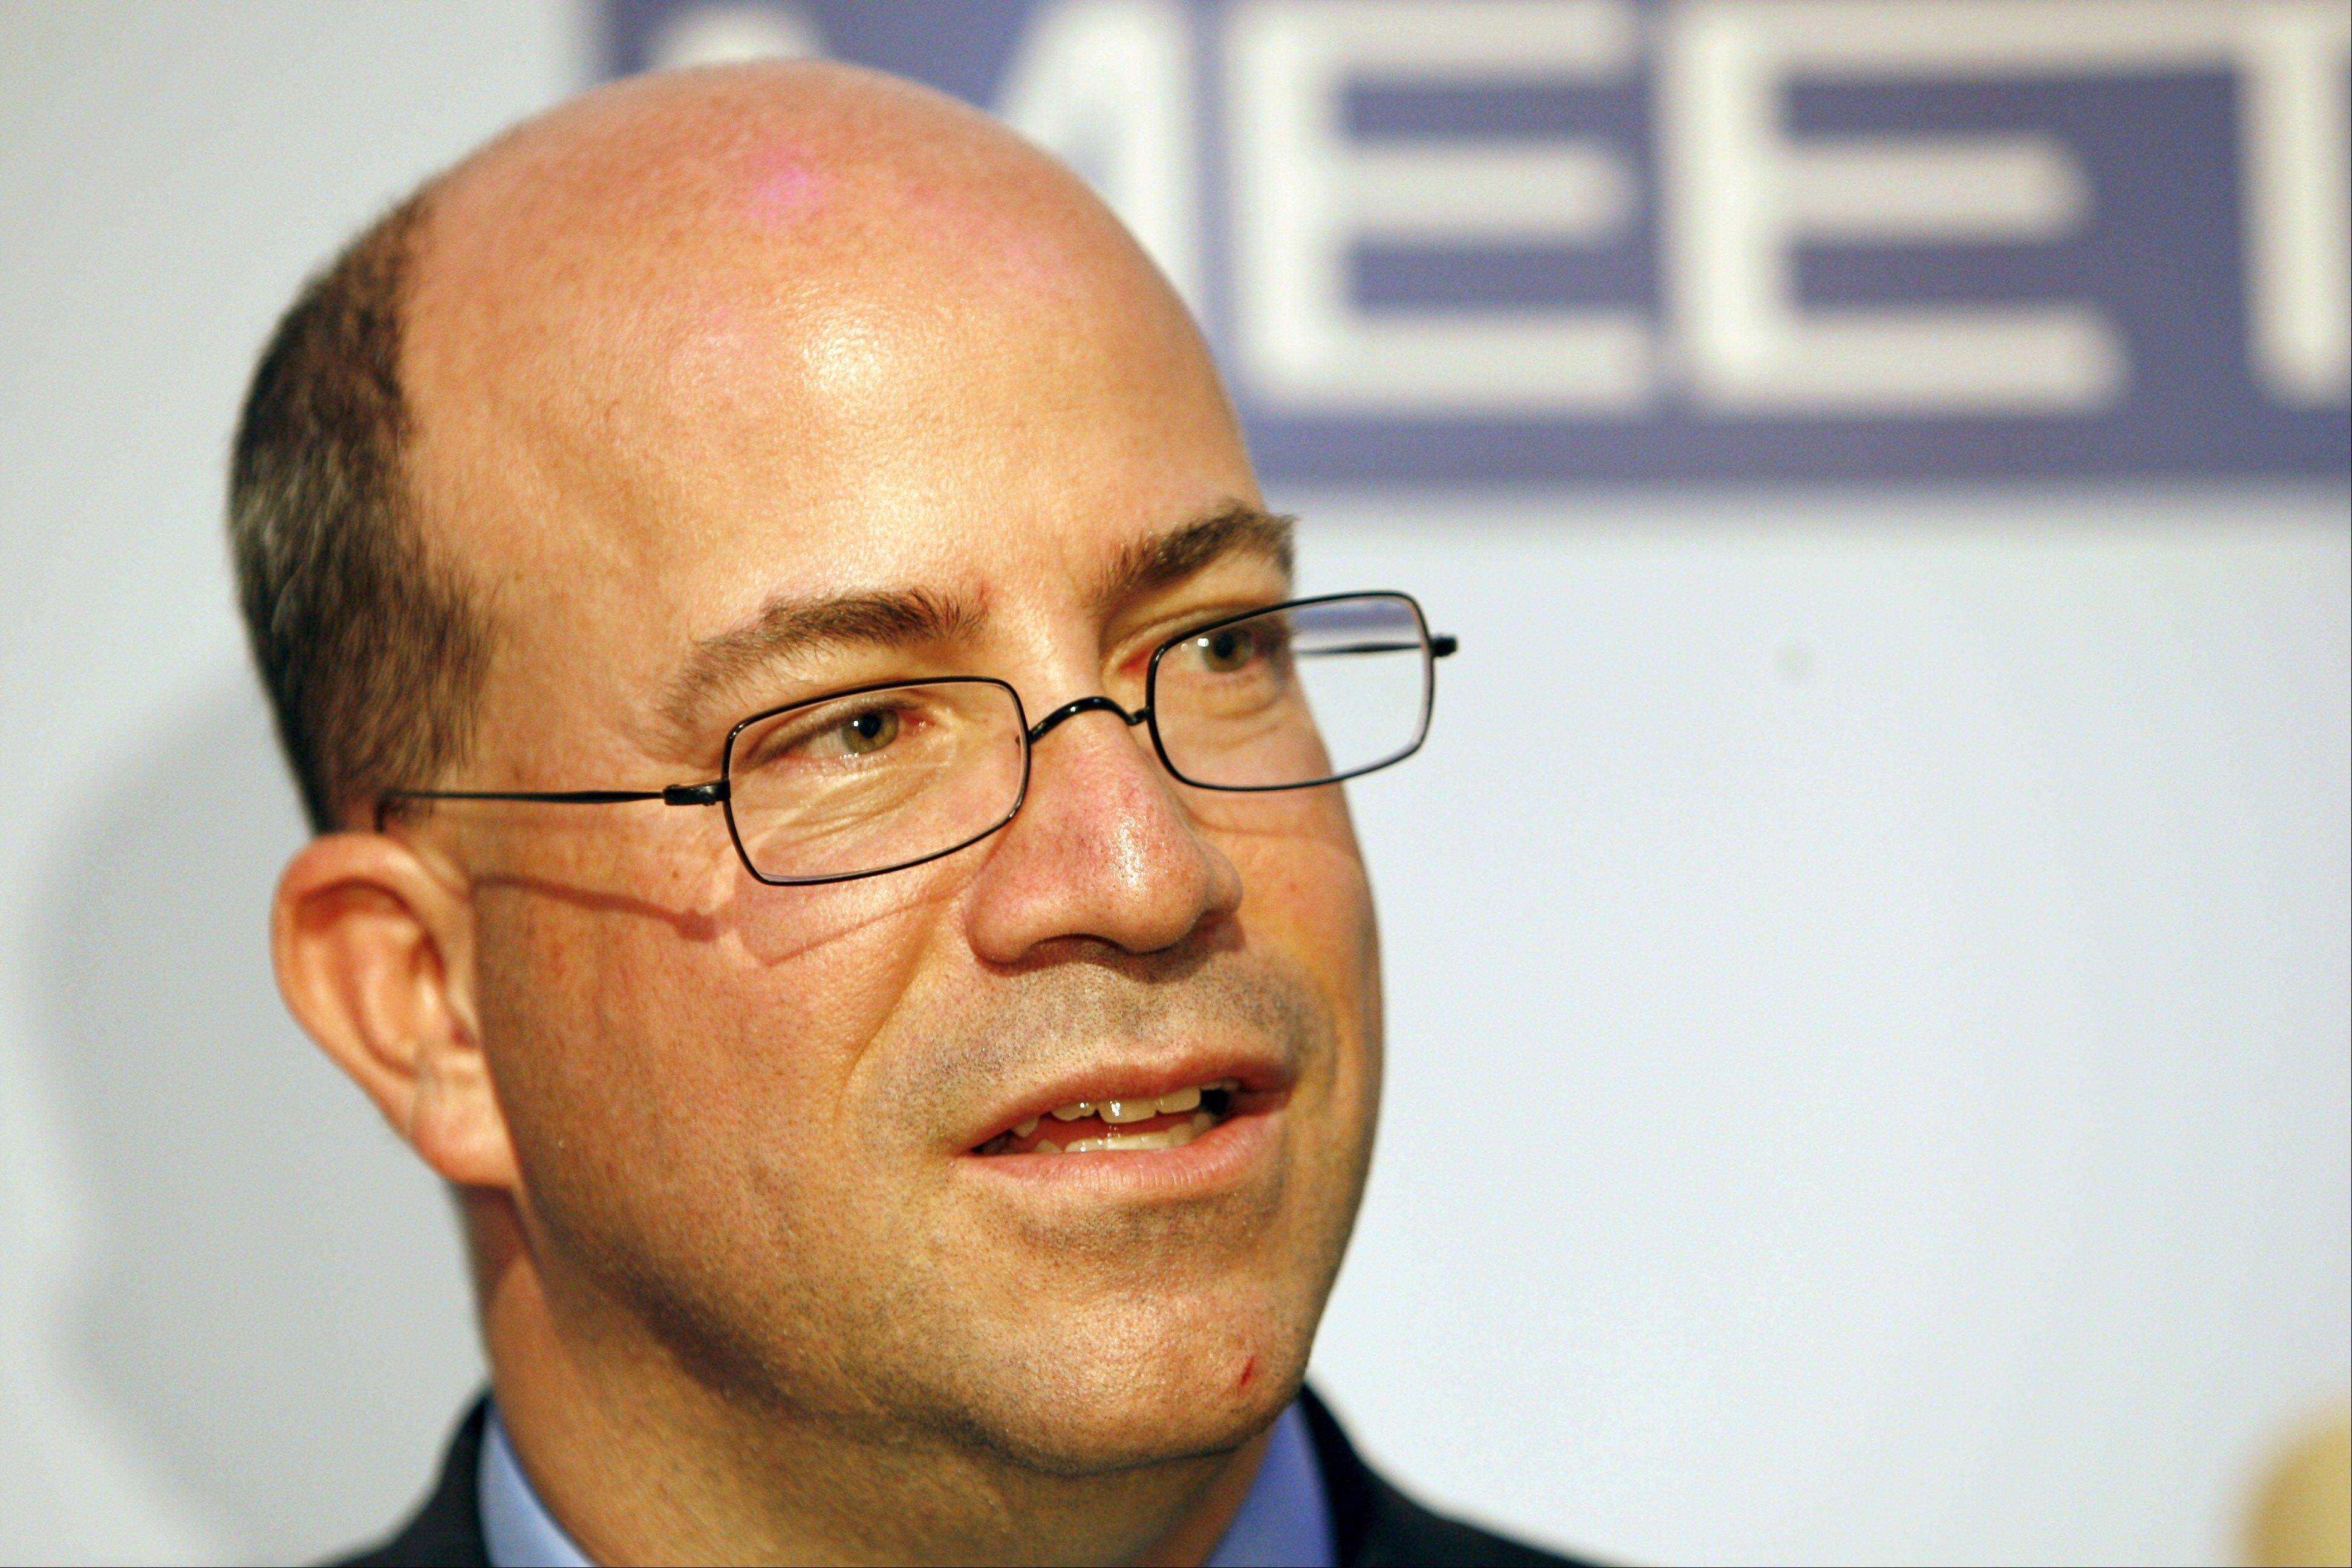 CNN on Thursday named former NBC Universal chief Jeff Zucker as its new top executive.